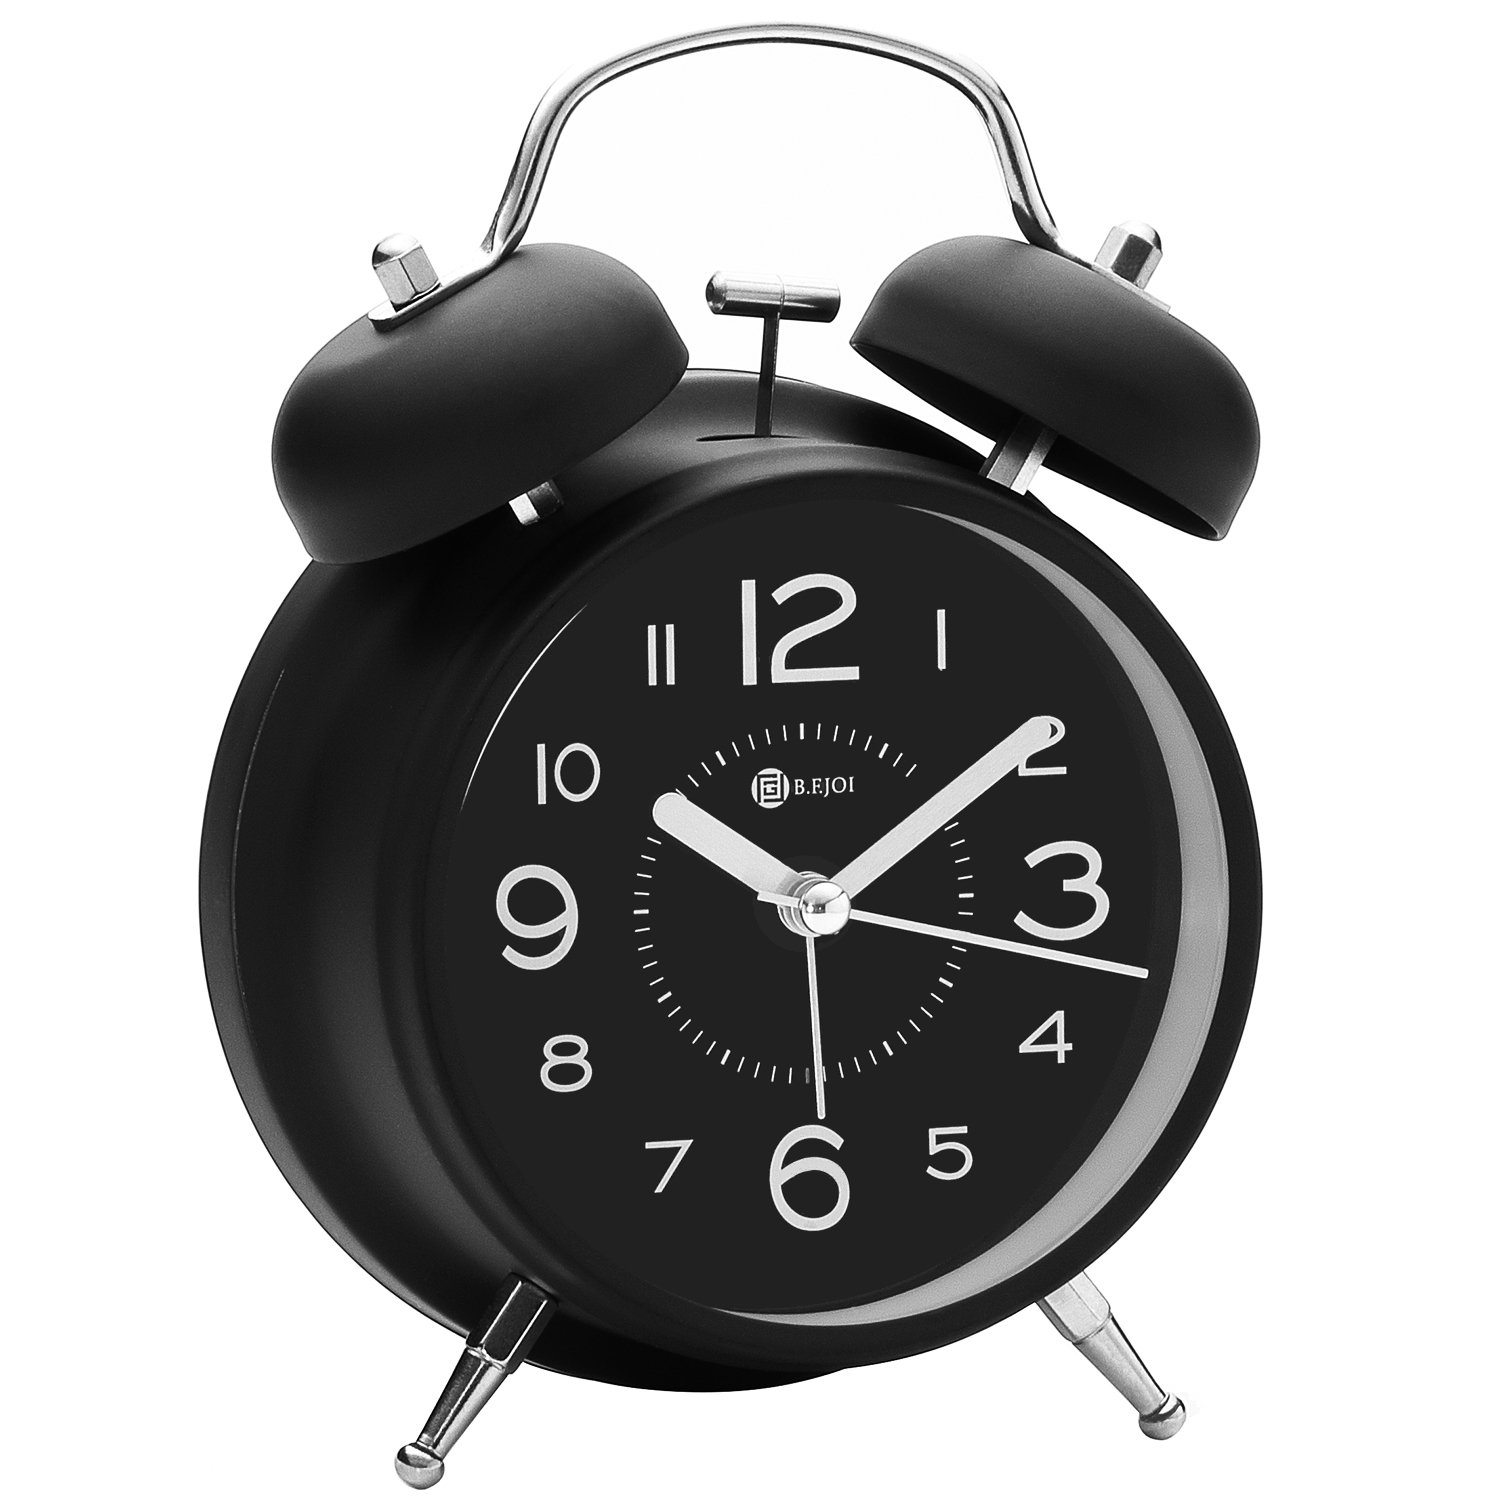 4'' Twin Bell Alarm Clock with Metal Dial, Nightlight, No Ticking Battery Operated Loud Alarm Clock for Bedroom (Black) by B.F.JOI (Image #2)